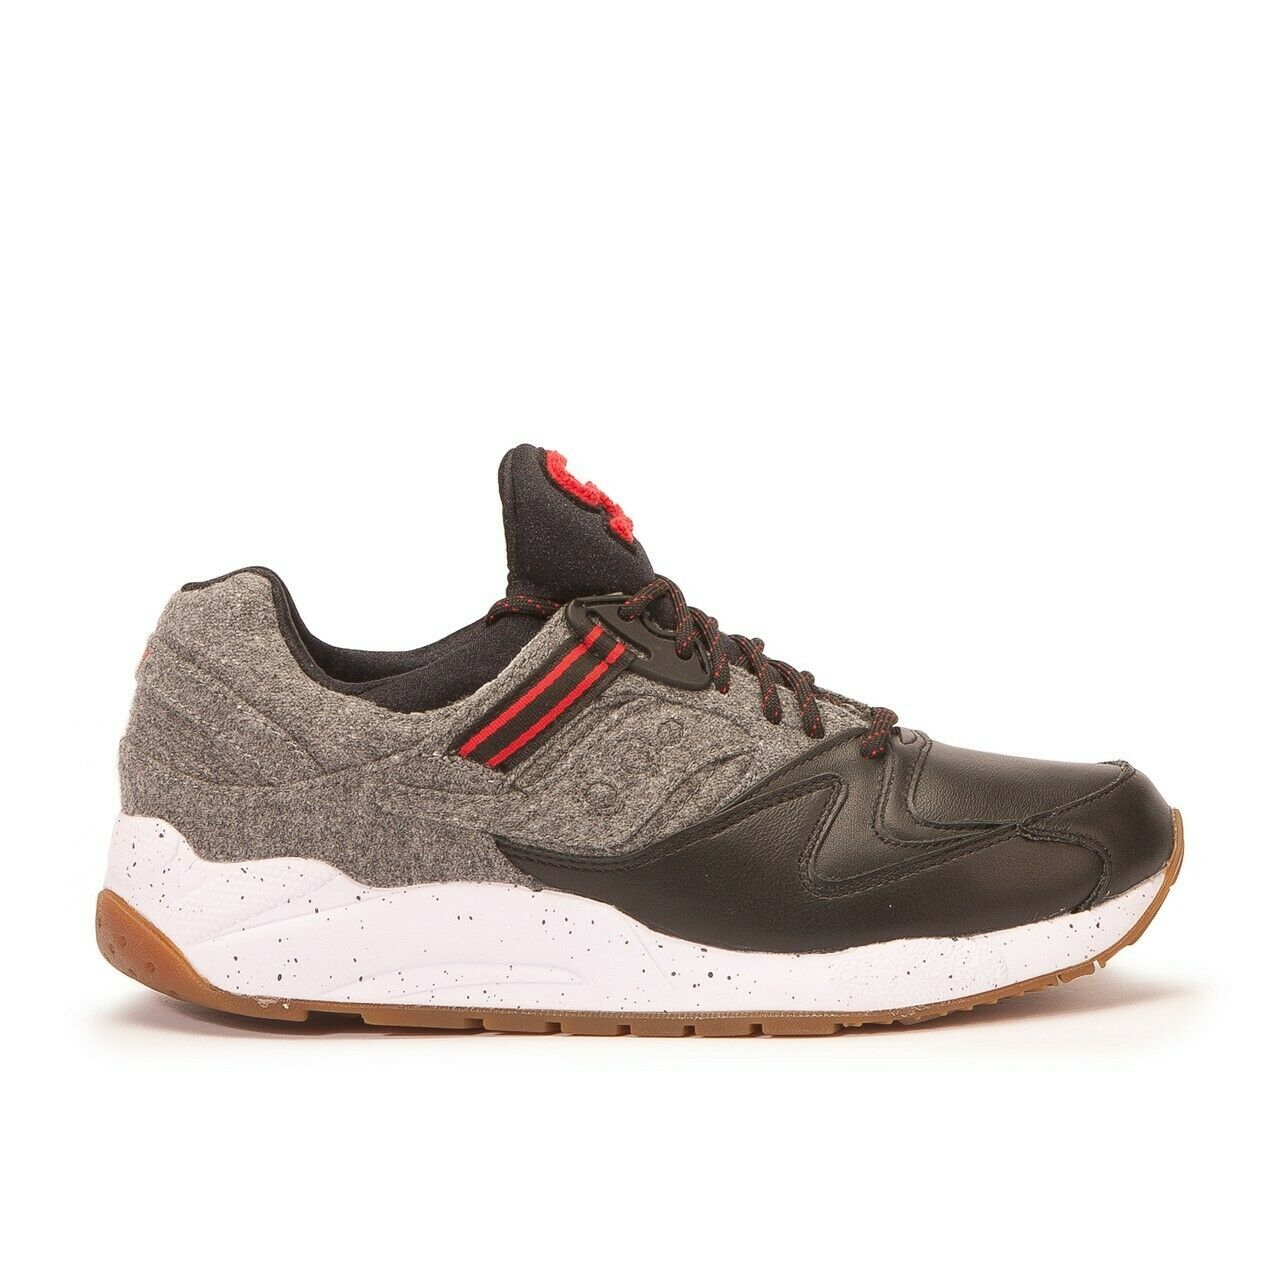 SAUCONY GRID 9000 LETTERMAN S BLACK GREY WHITE RED LEATHER WOOL S70259 1 NEW 7.5 | eBay